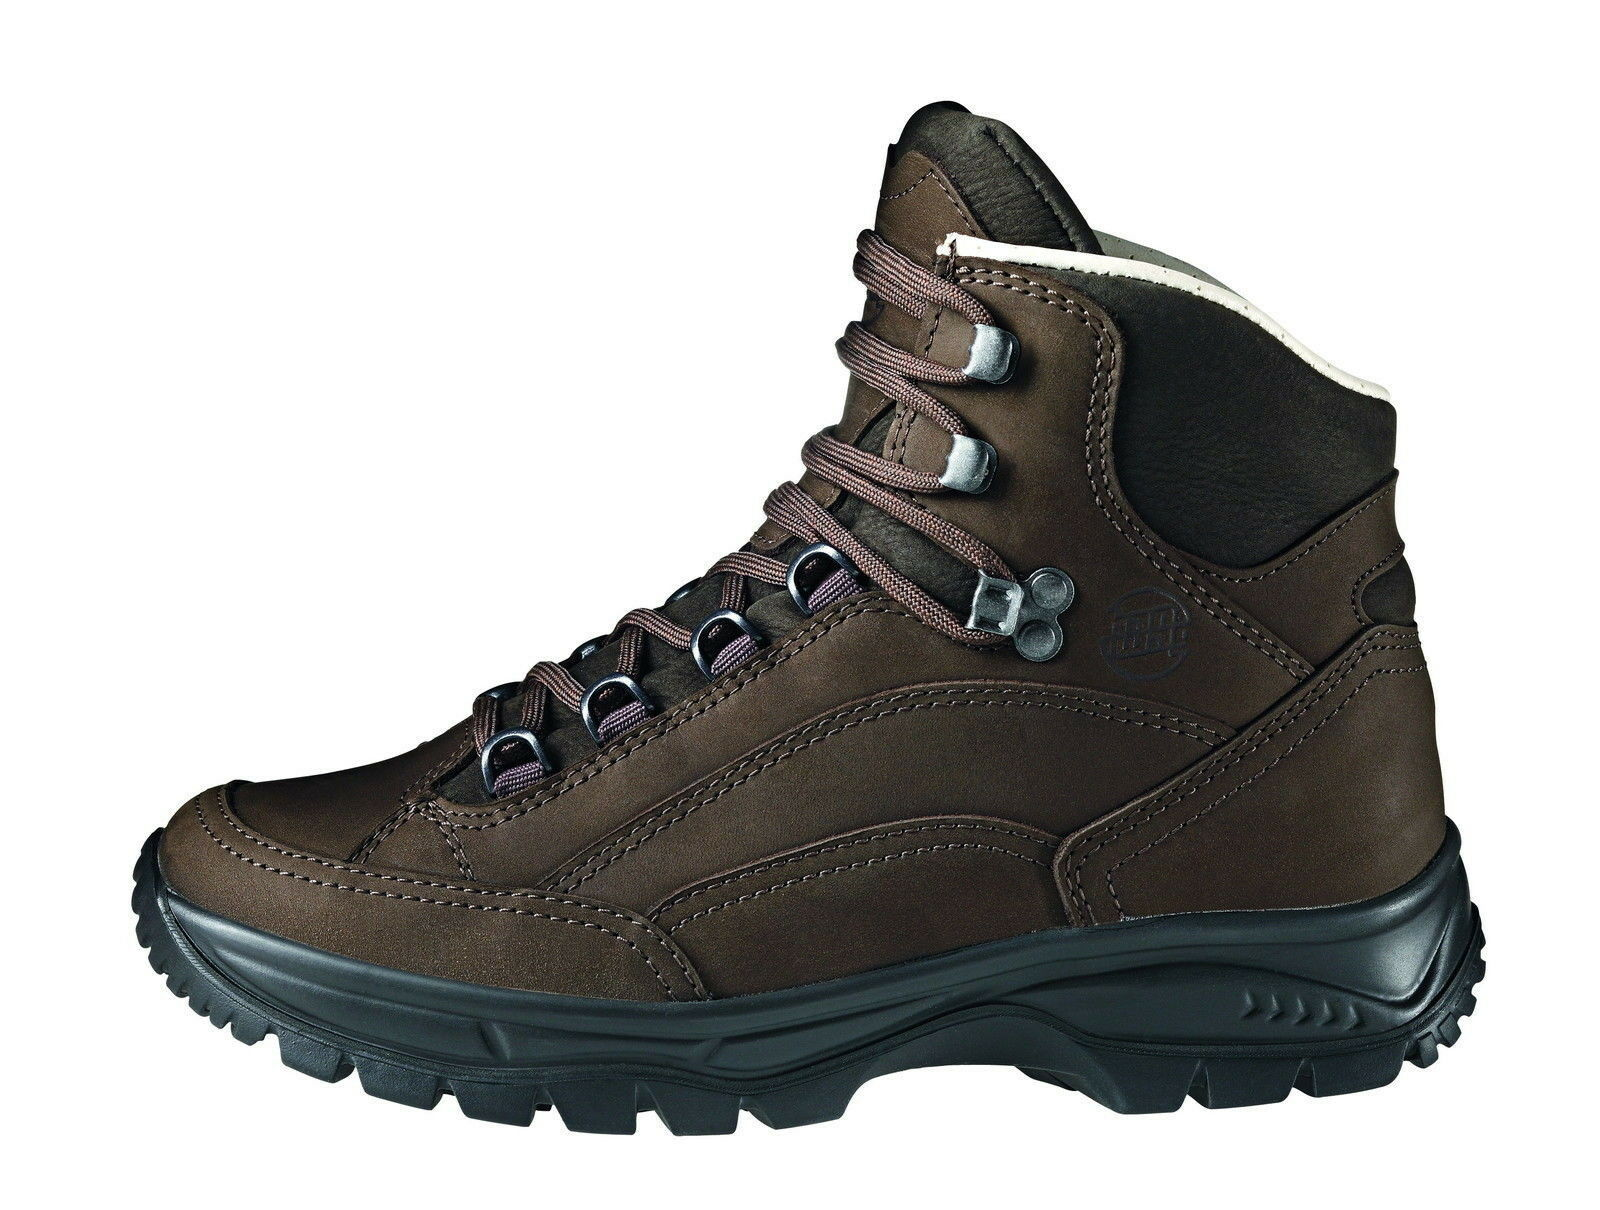 NEW Hanwag Mountain shoes Alta Bunion Lady Size 5,5 (39)  Earth  save 50%-75%off